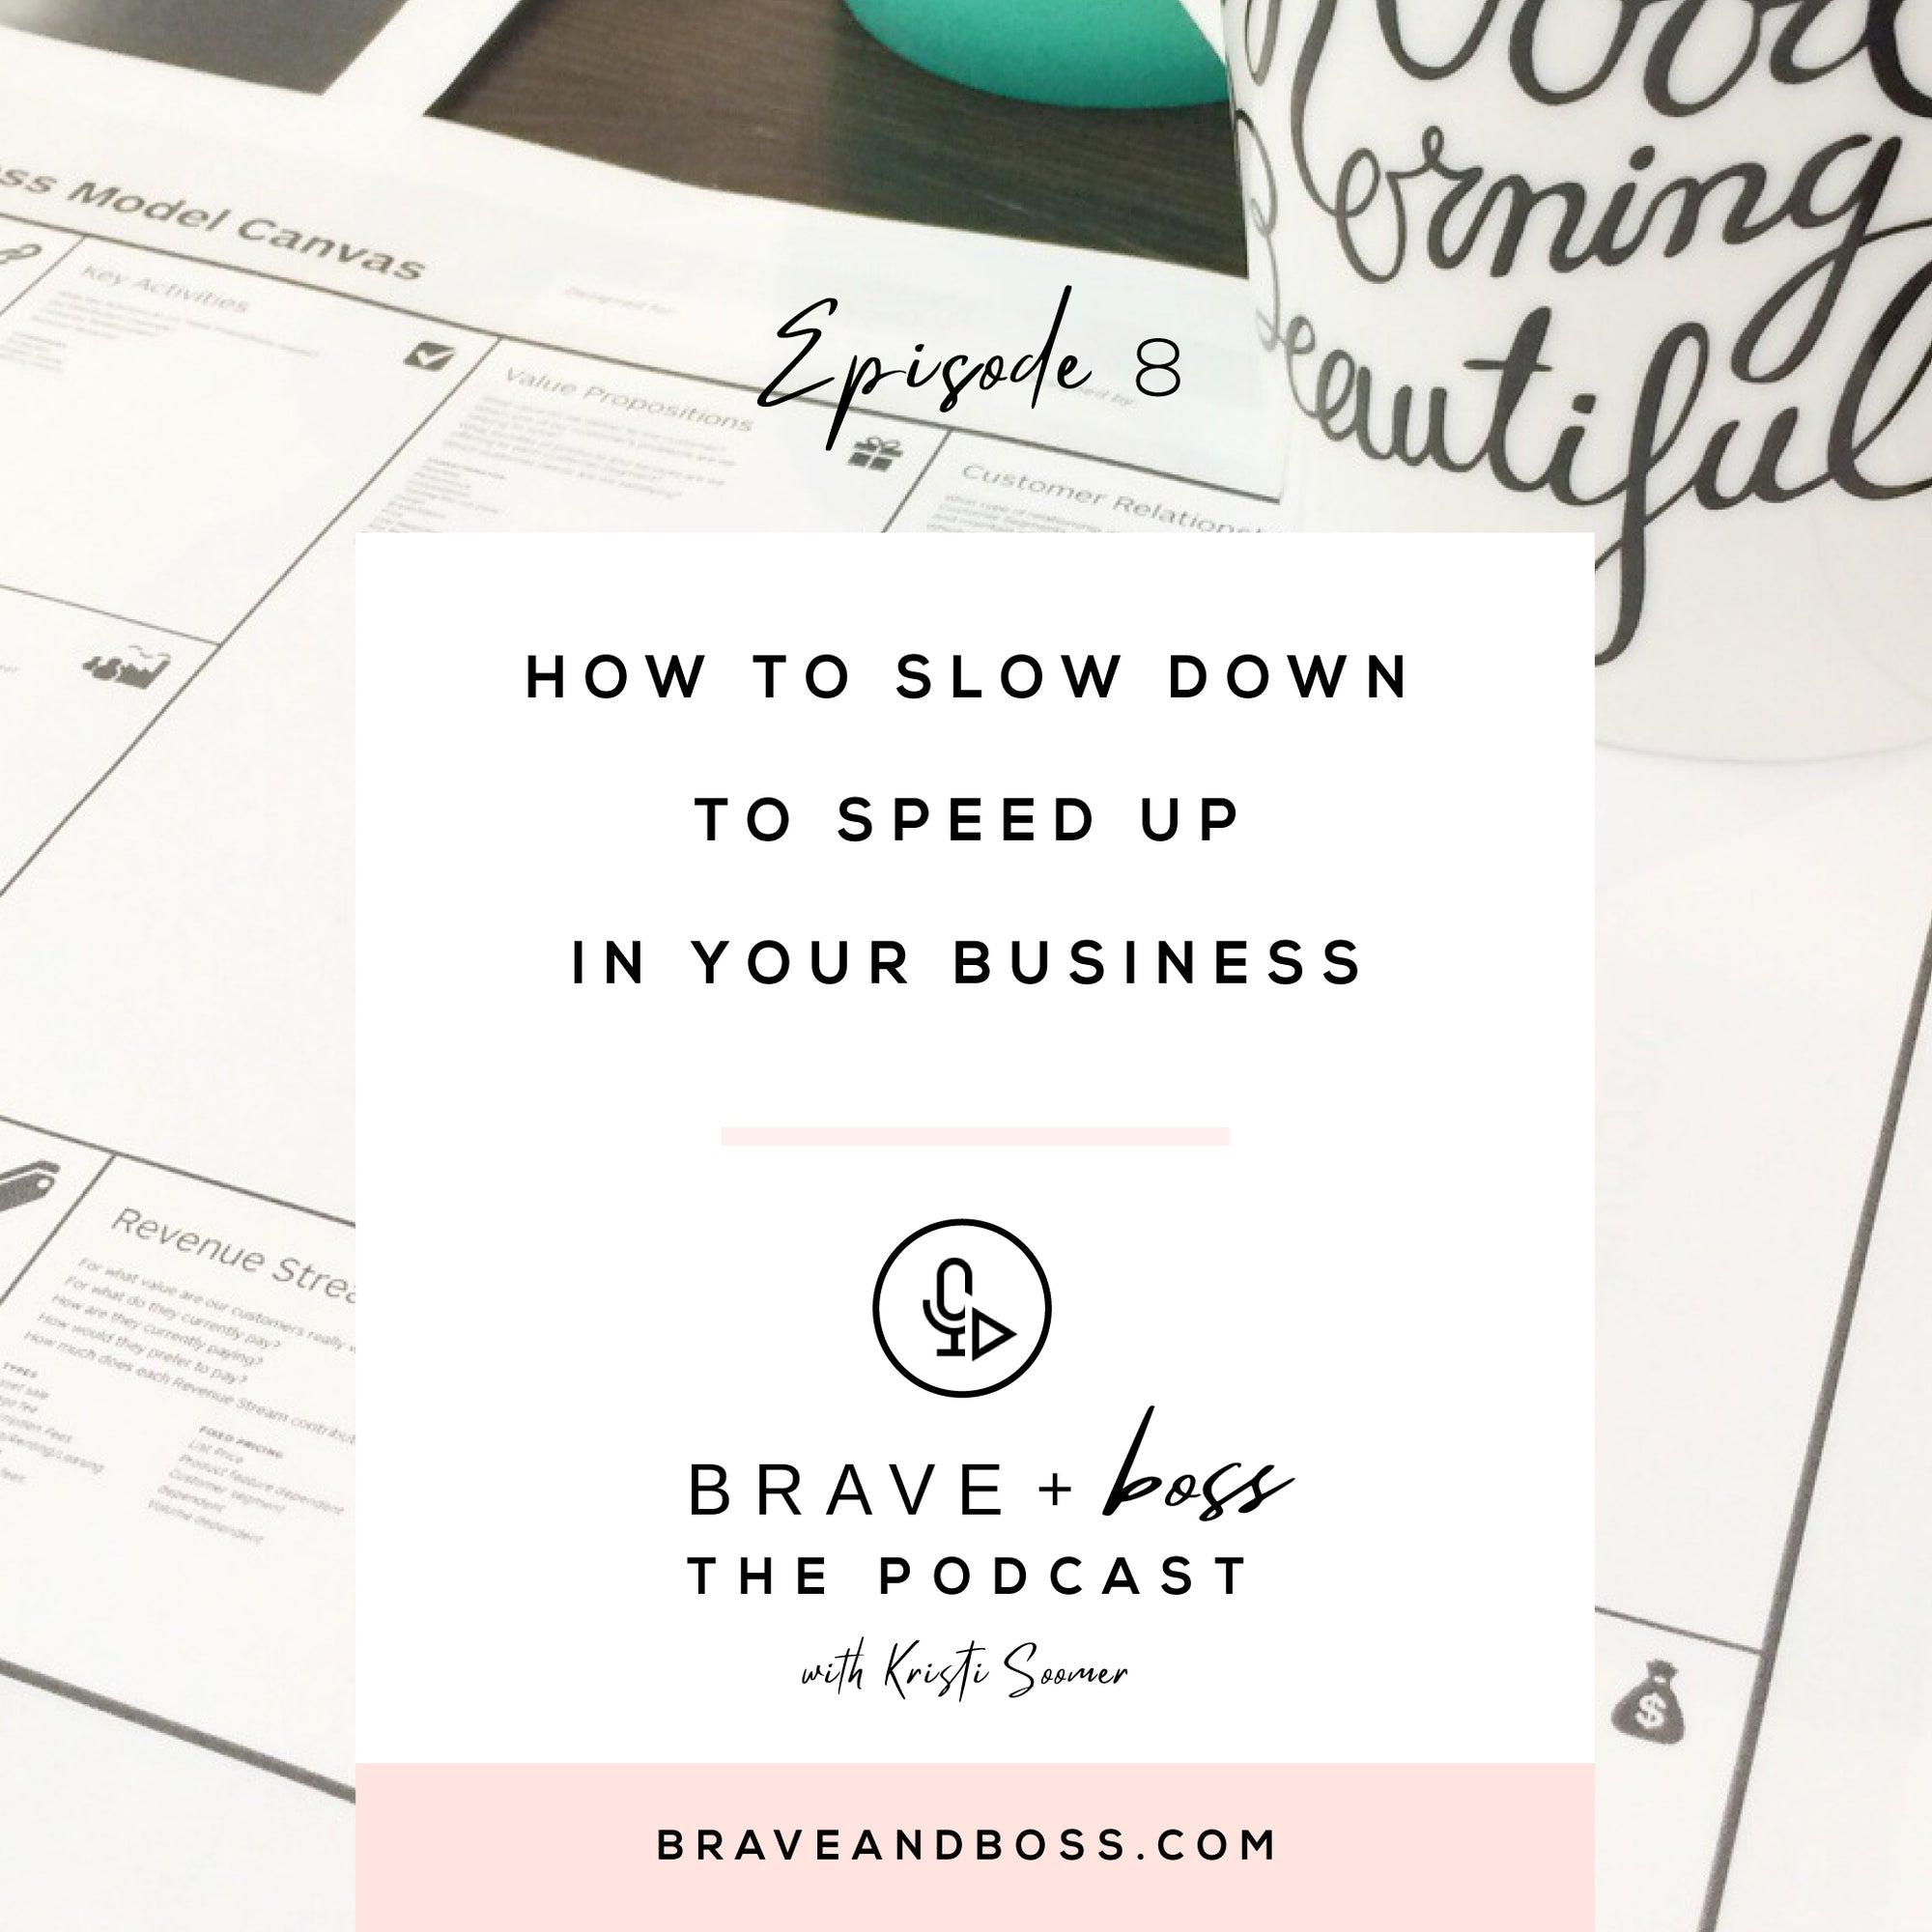 Slow Down to Speed Up in Your Business